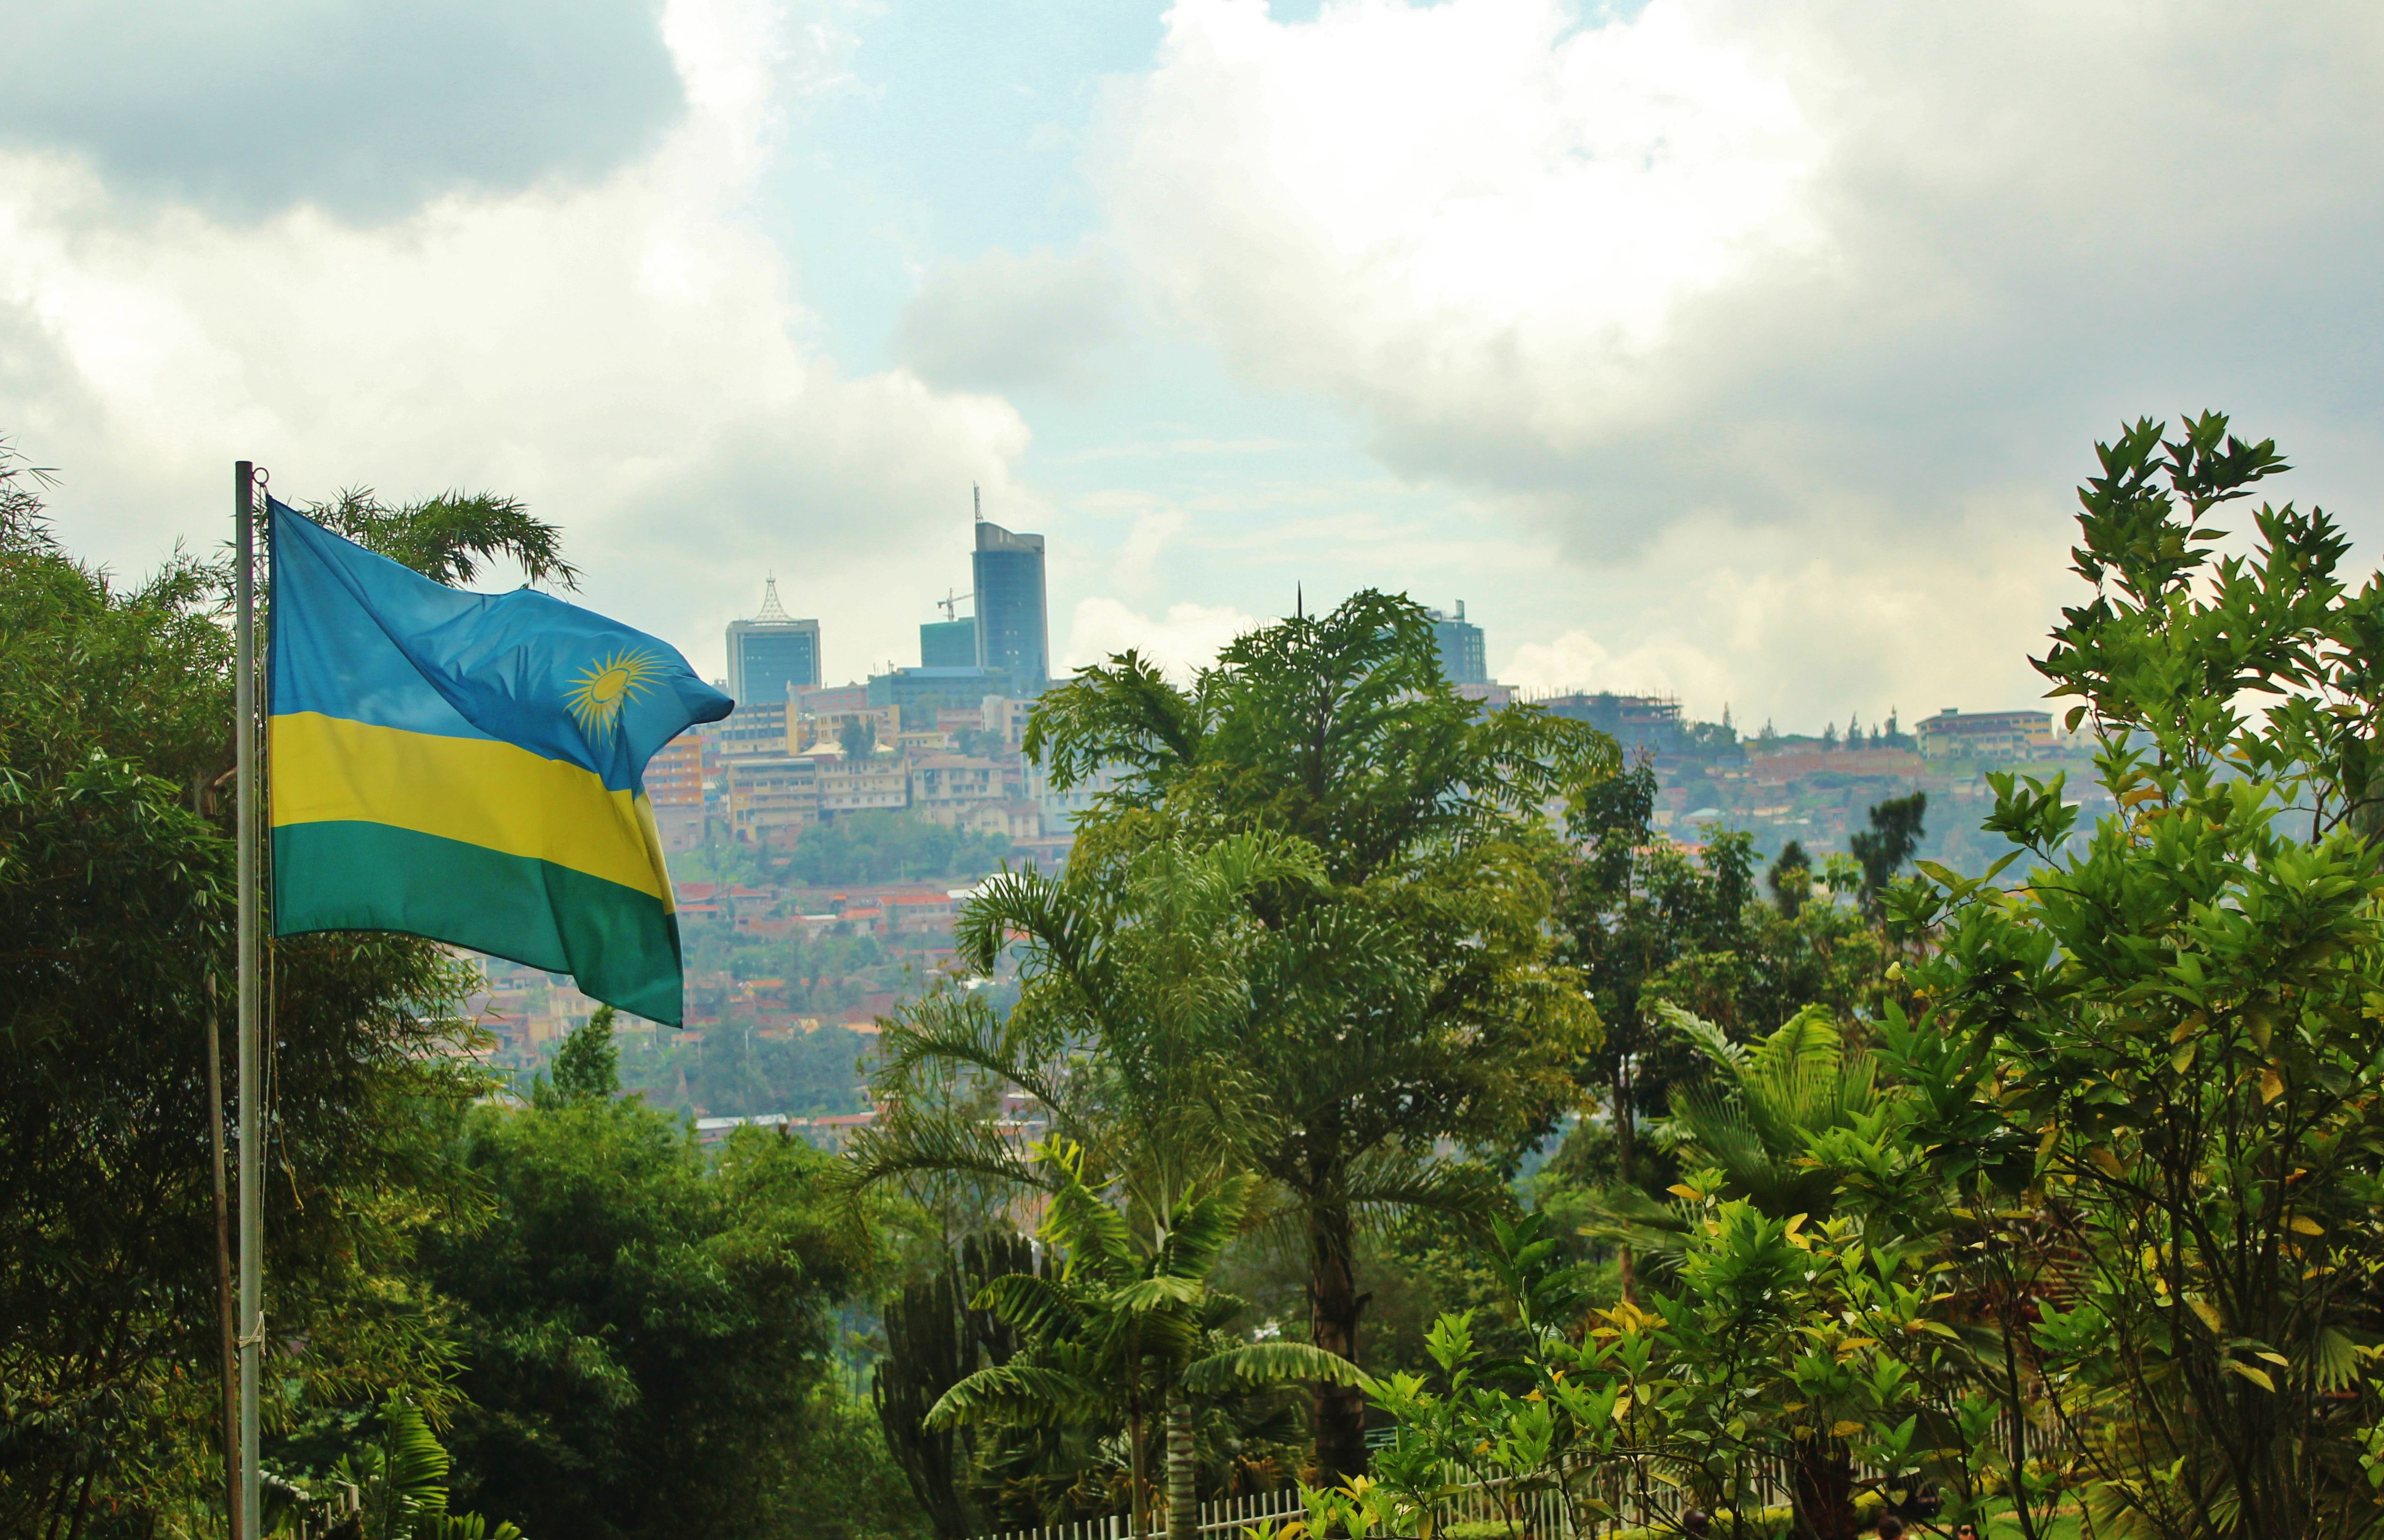 View of Kigali and Rwanda's flag from the Kigali Genocide Memorial